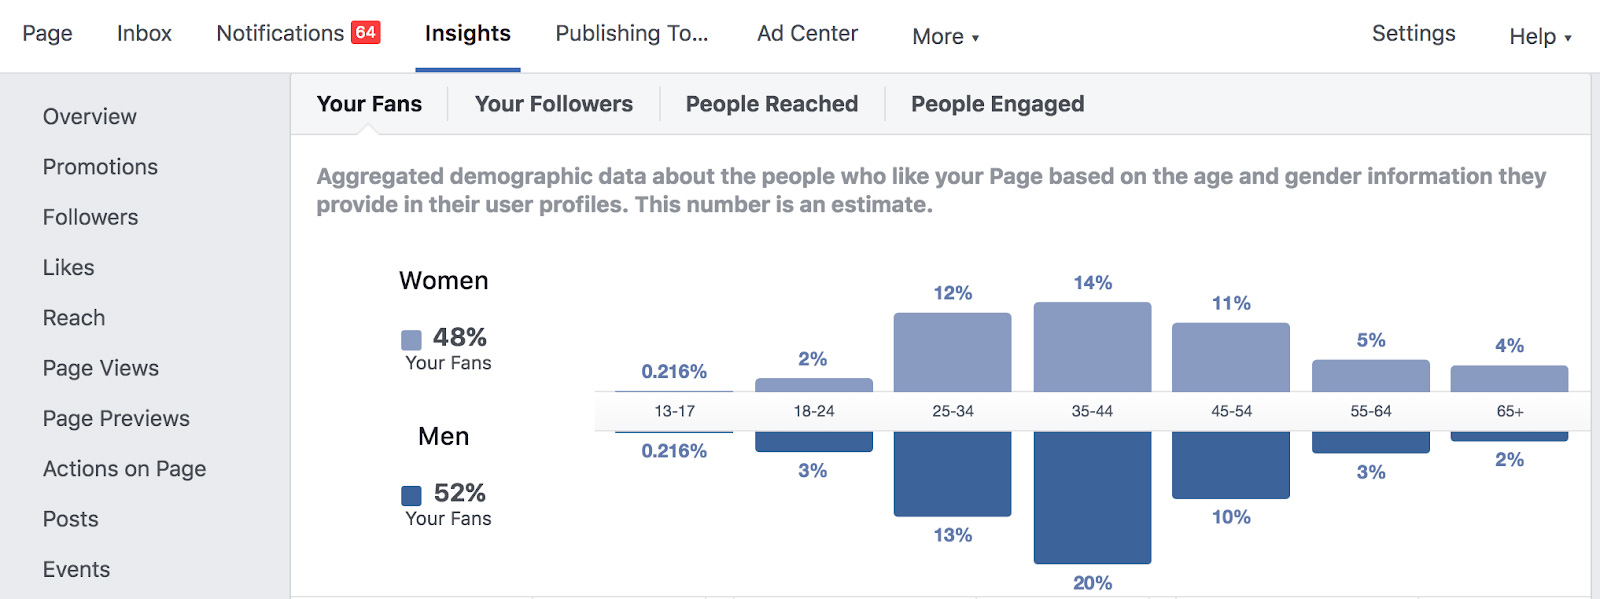 Facebook Insights has valuable information about your user base